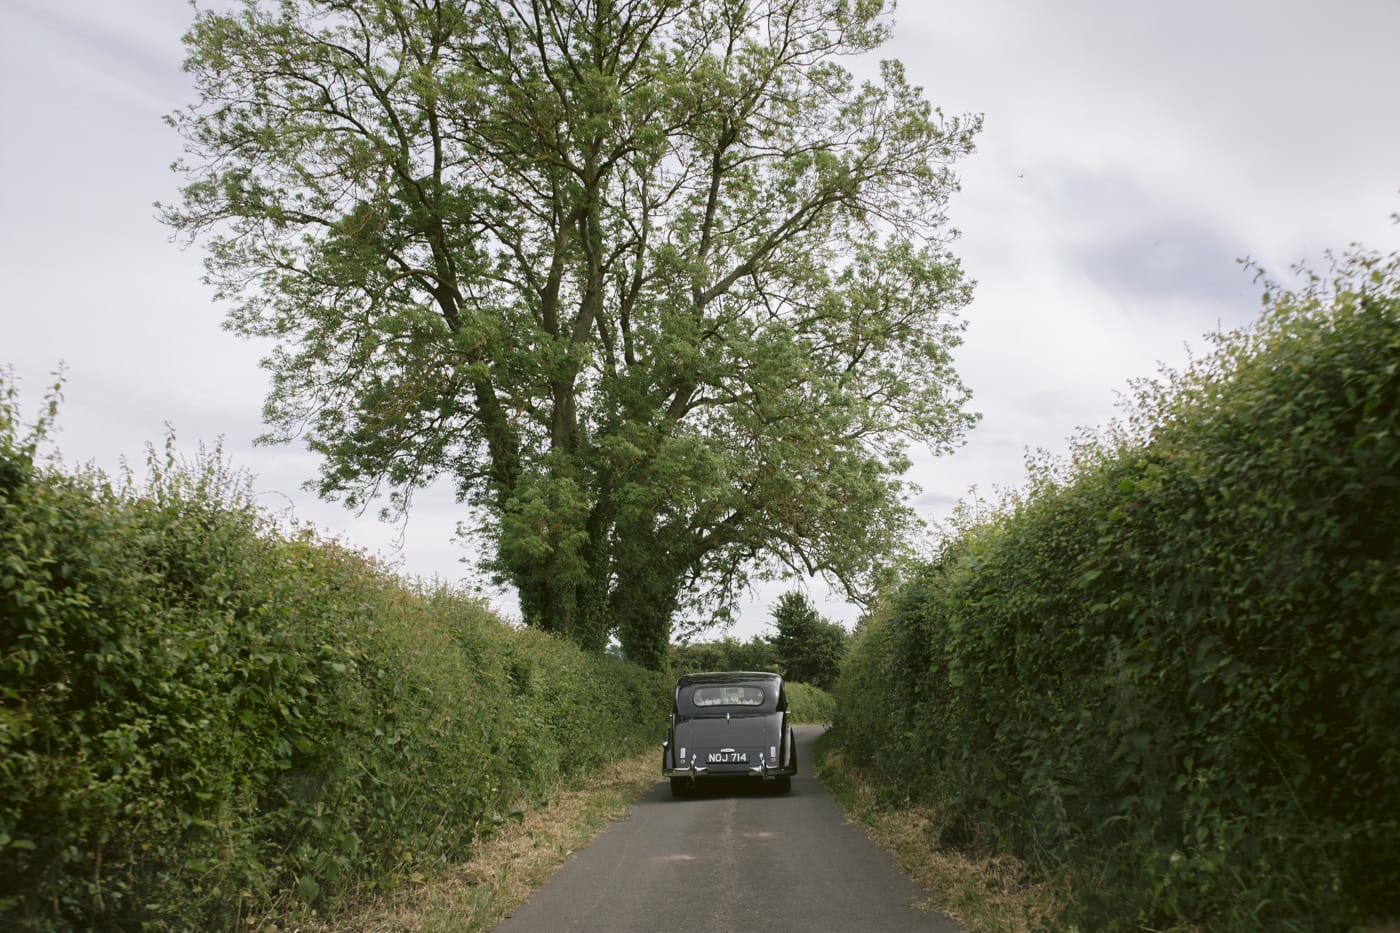 Wedding Car down the Road Distance Photography Shooting